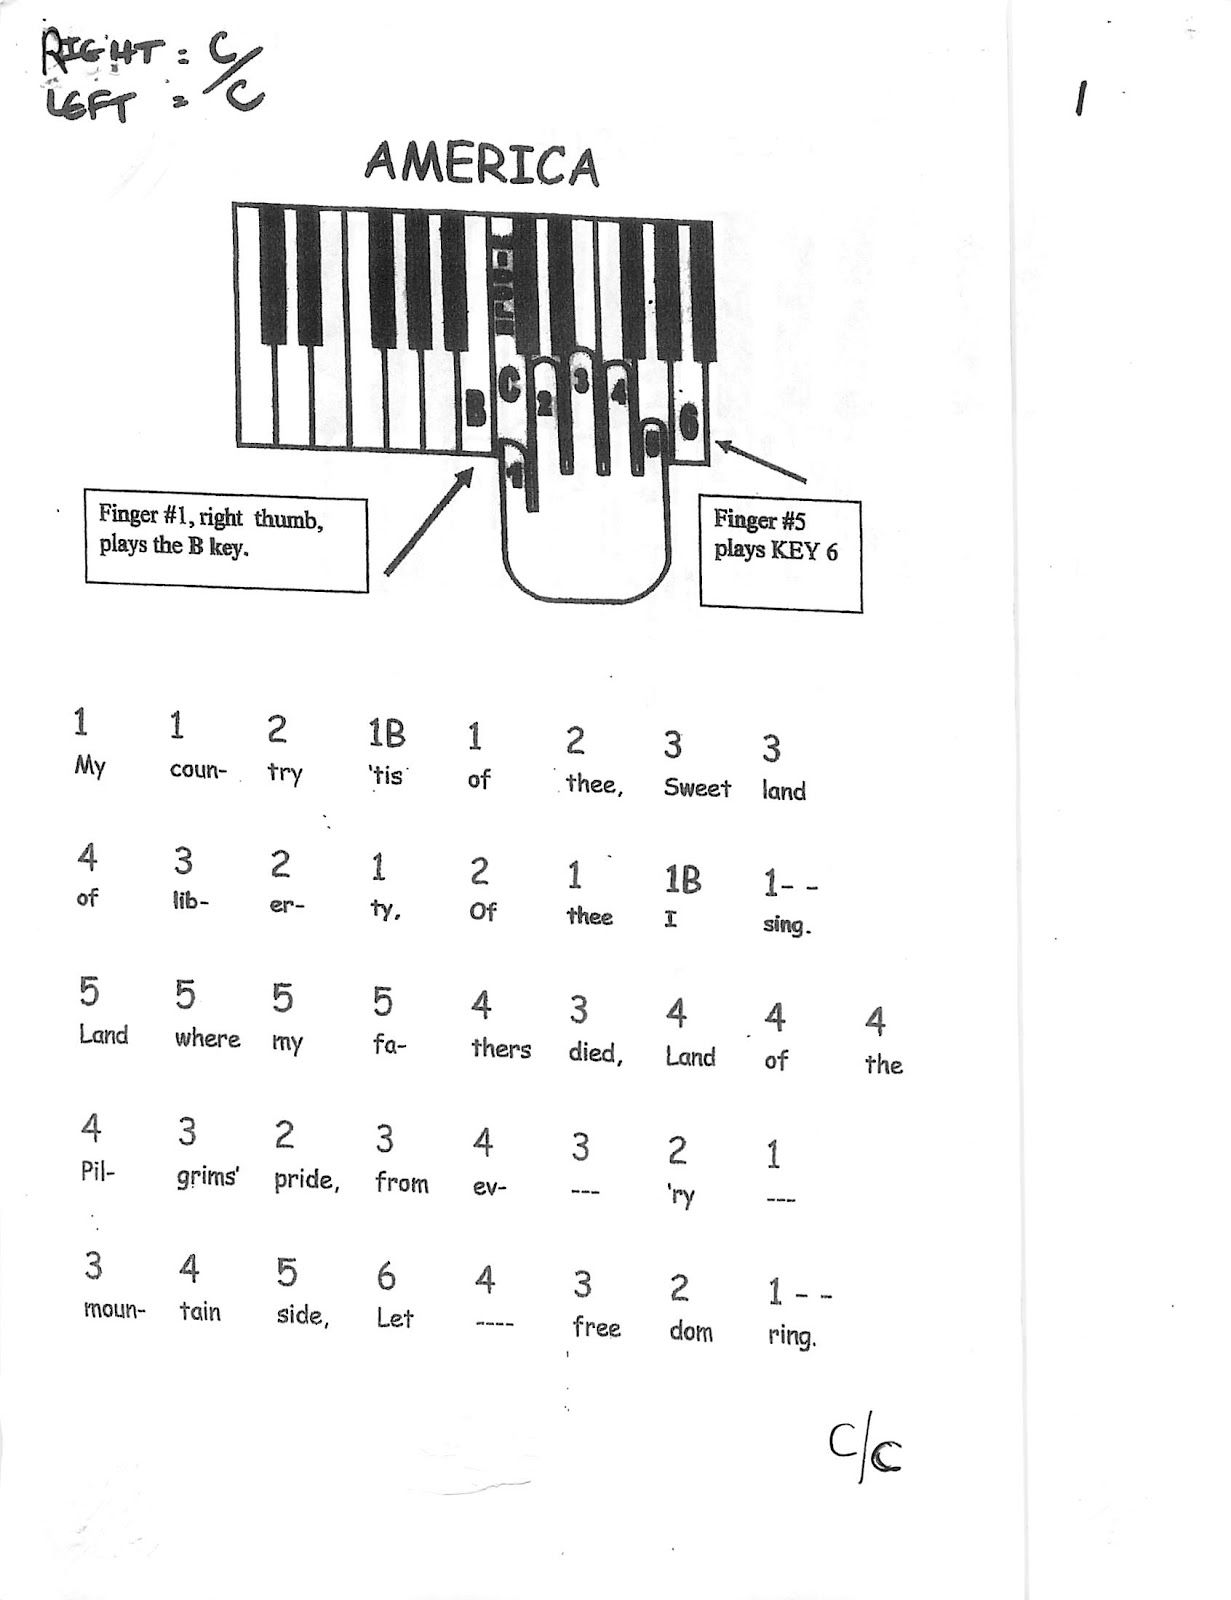 Easy Keyboard 1 Melody Songs By Frame And Finger Number 1 With